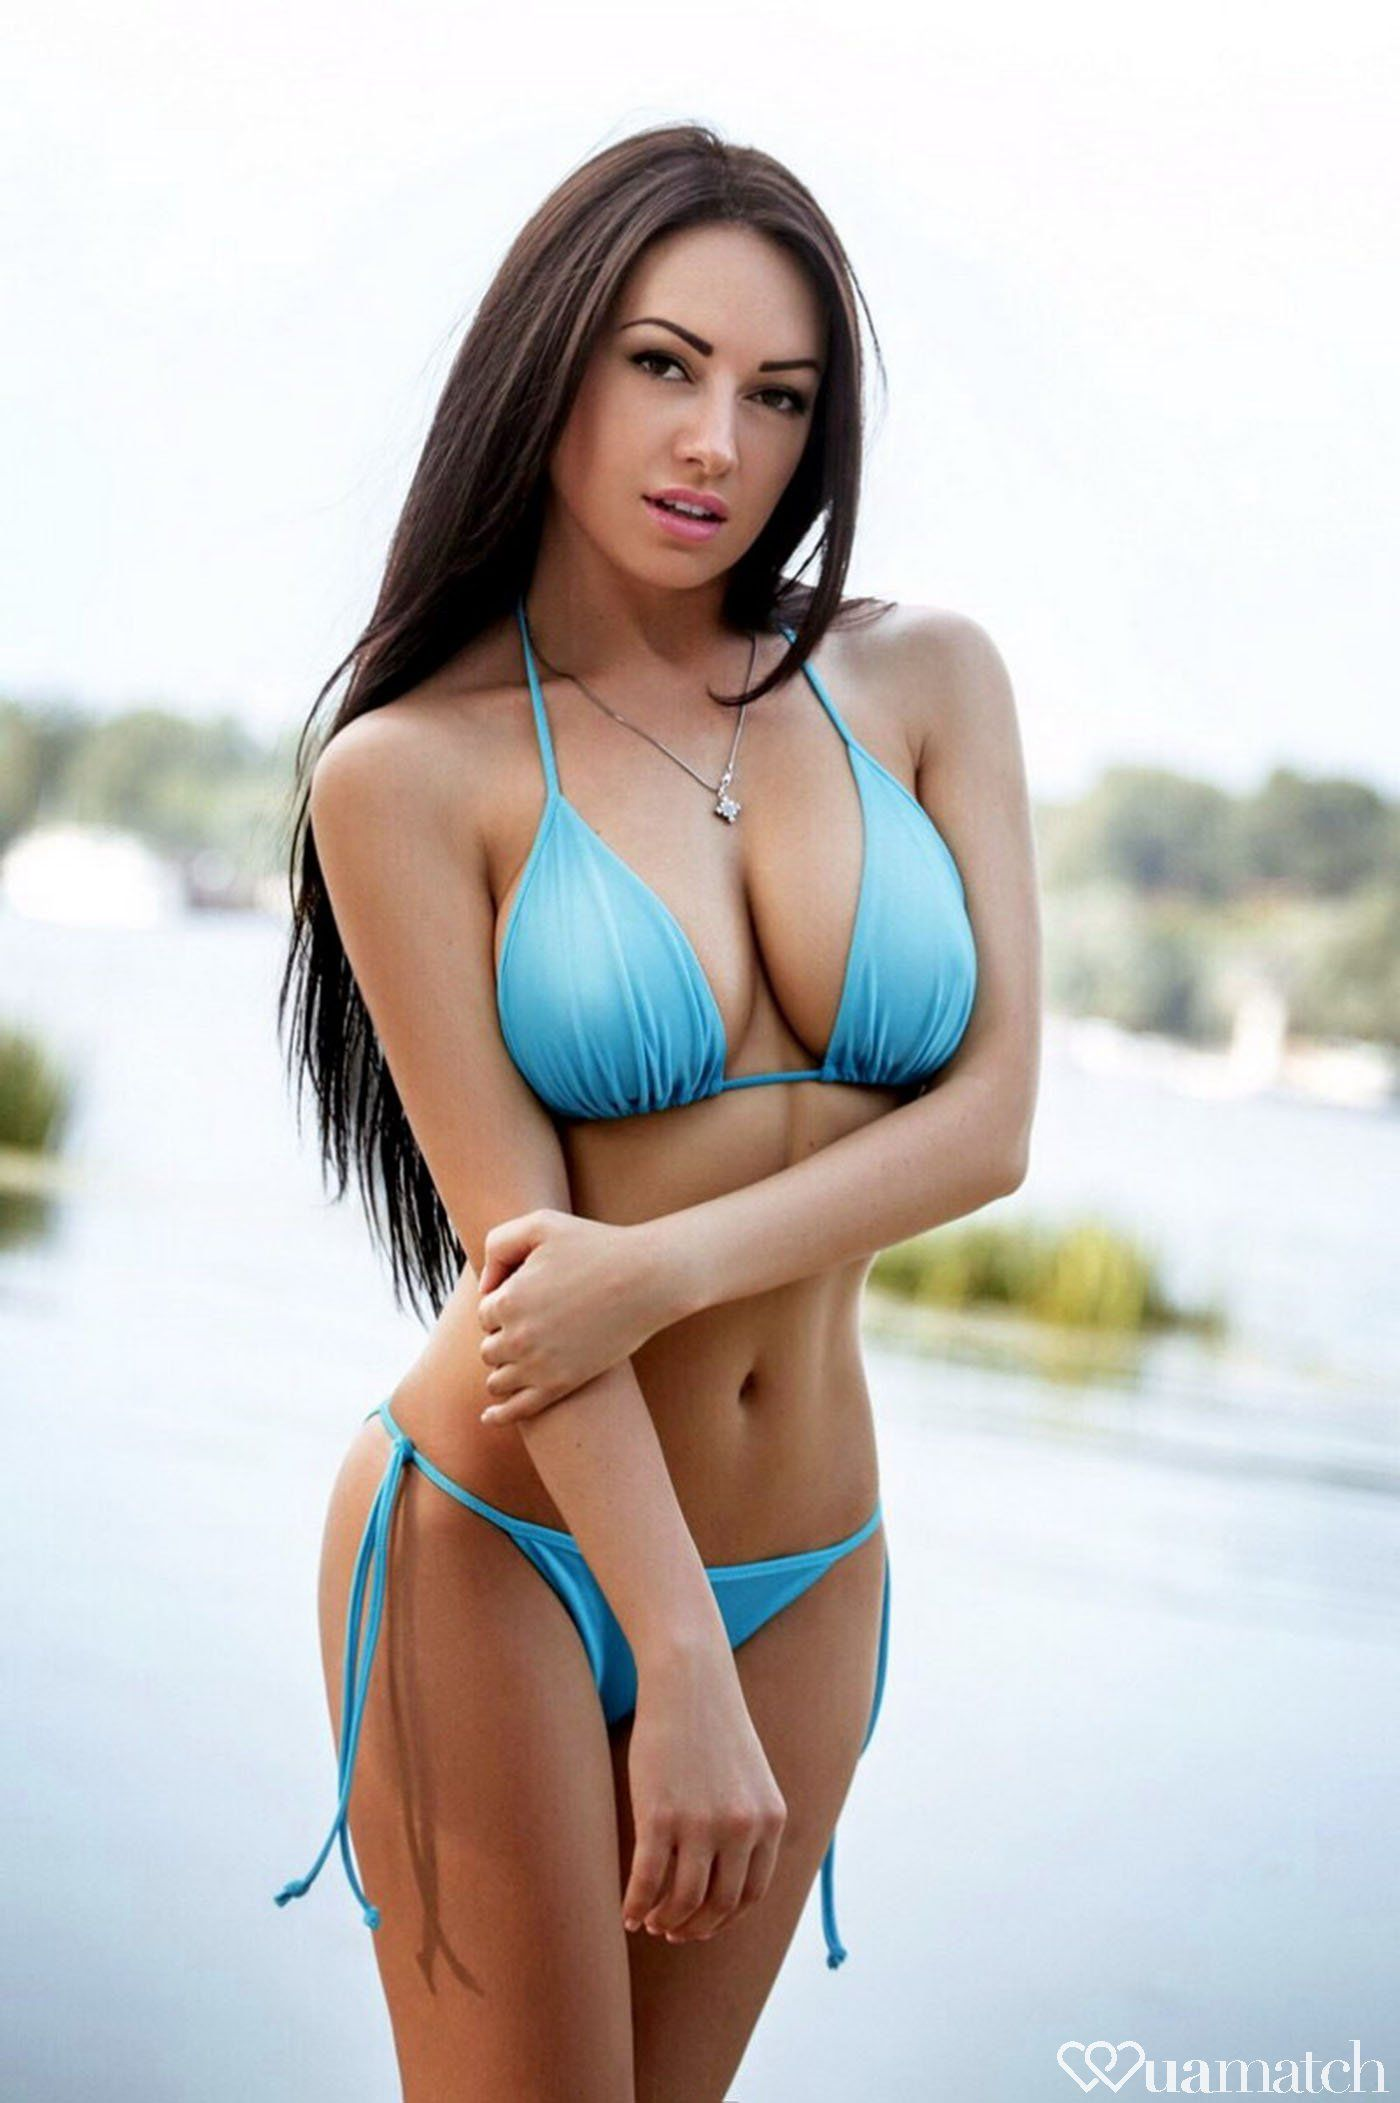 Russian brides bikini russian girls